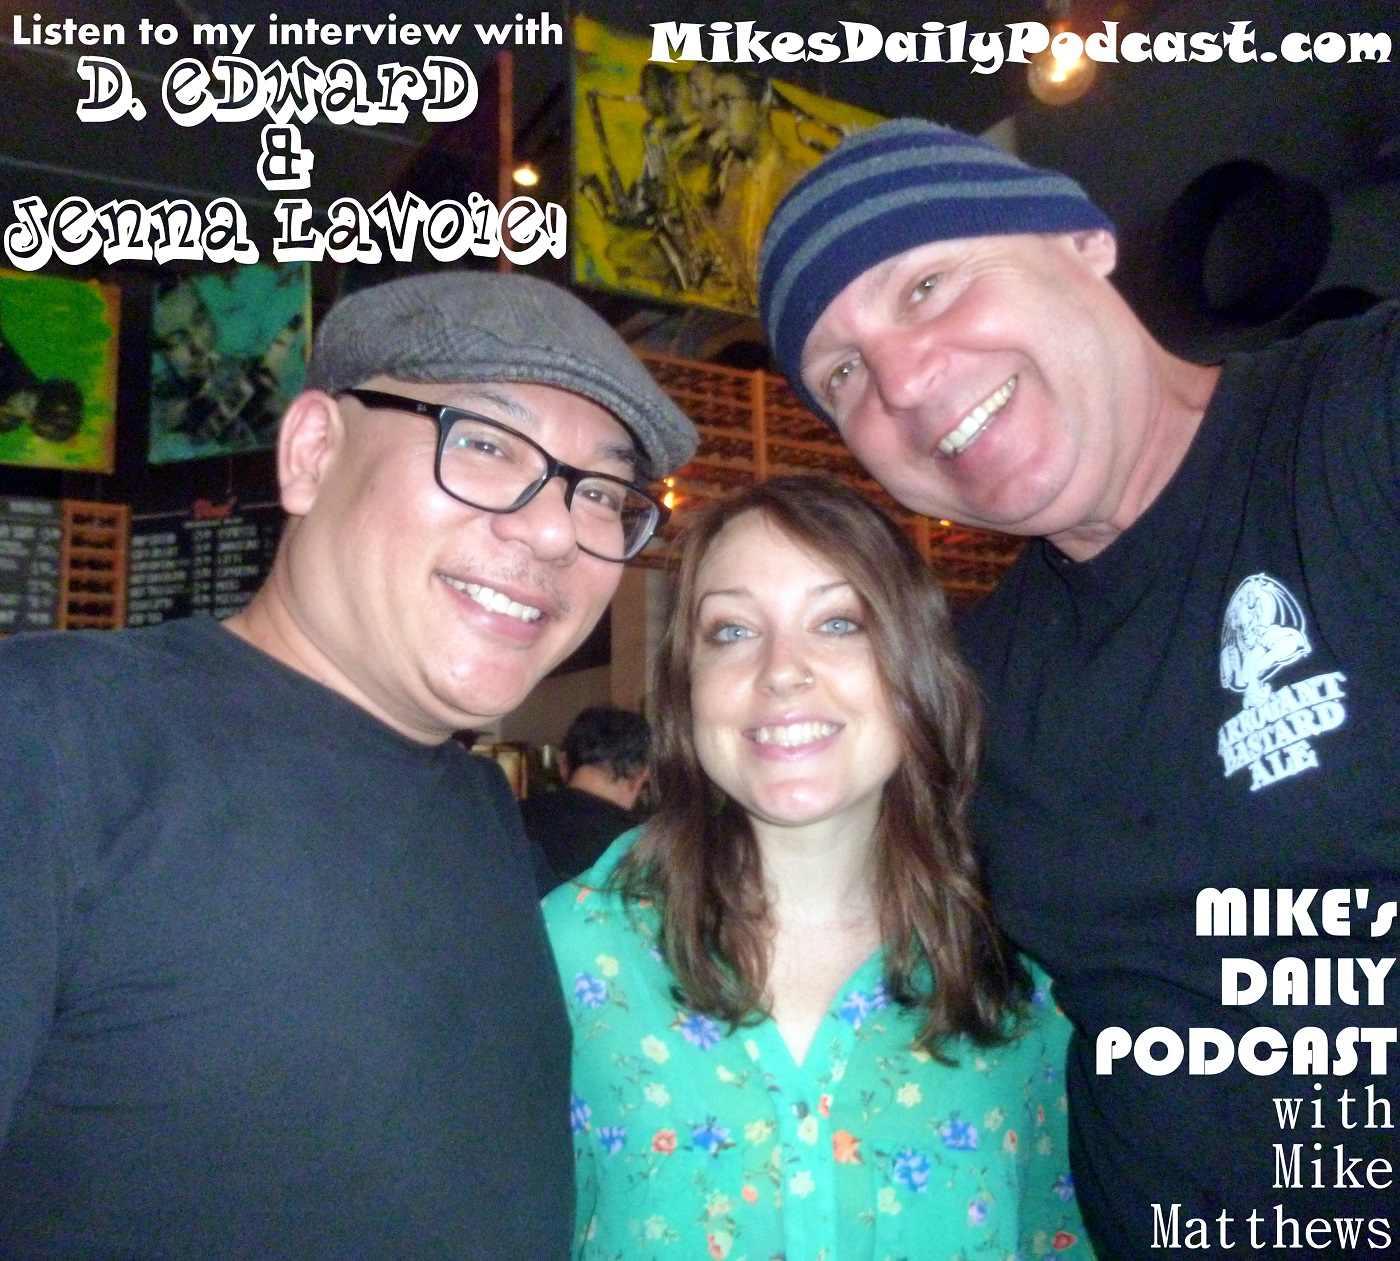 MIKEs DAILY PODCAST 3-10-15 D Edward Jenna Lavoie Show Me